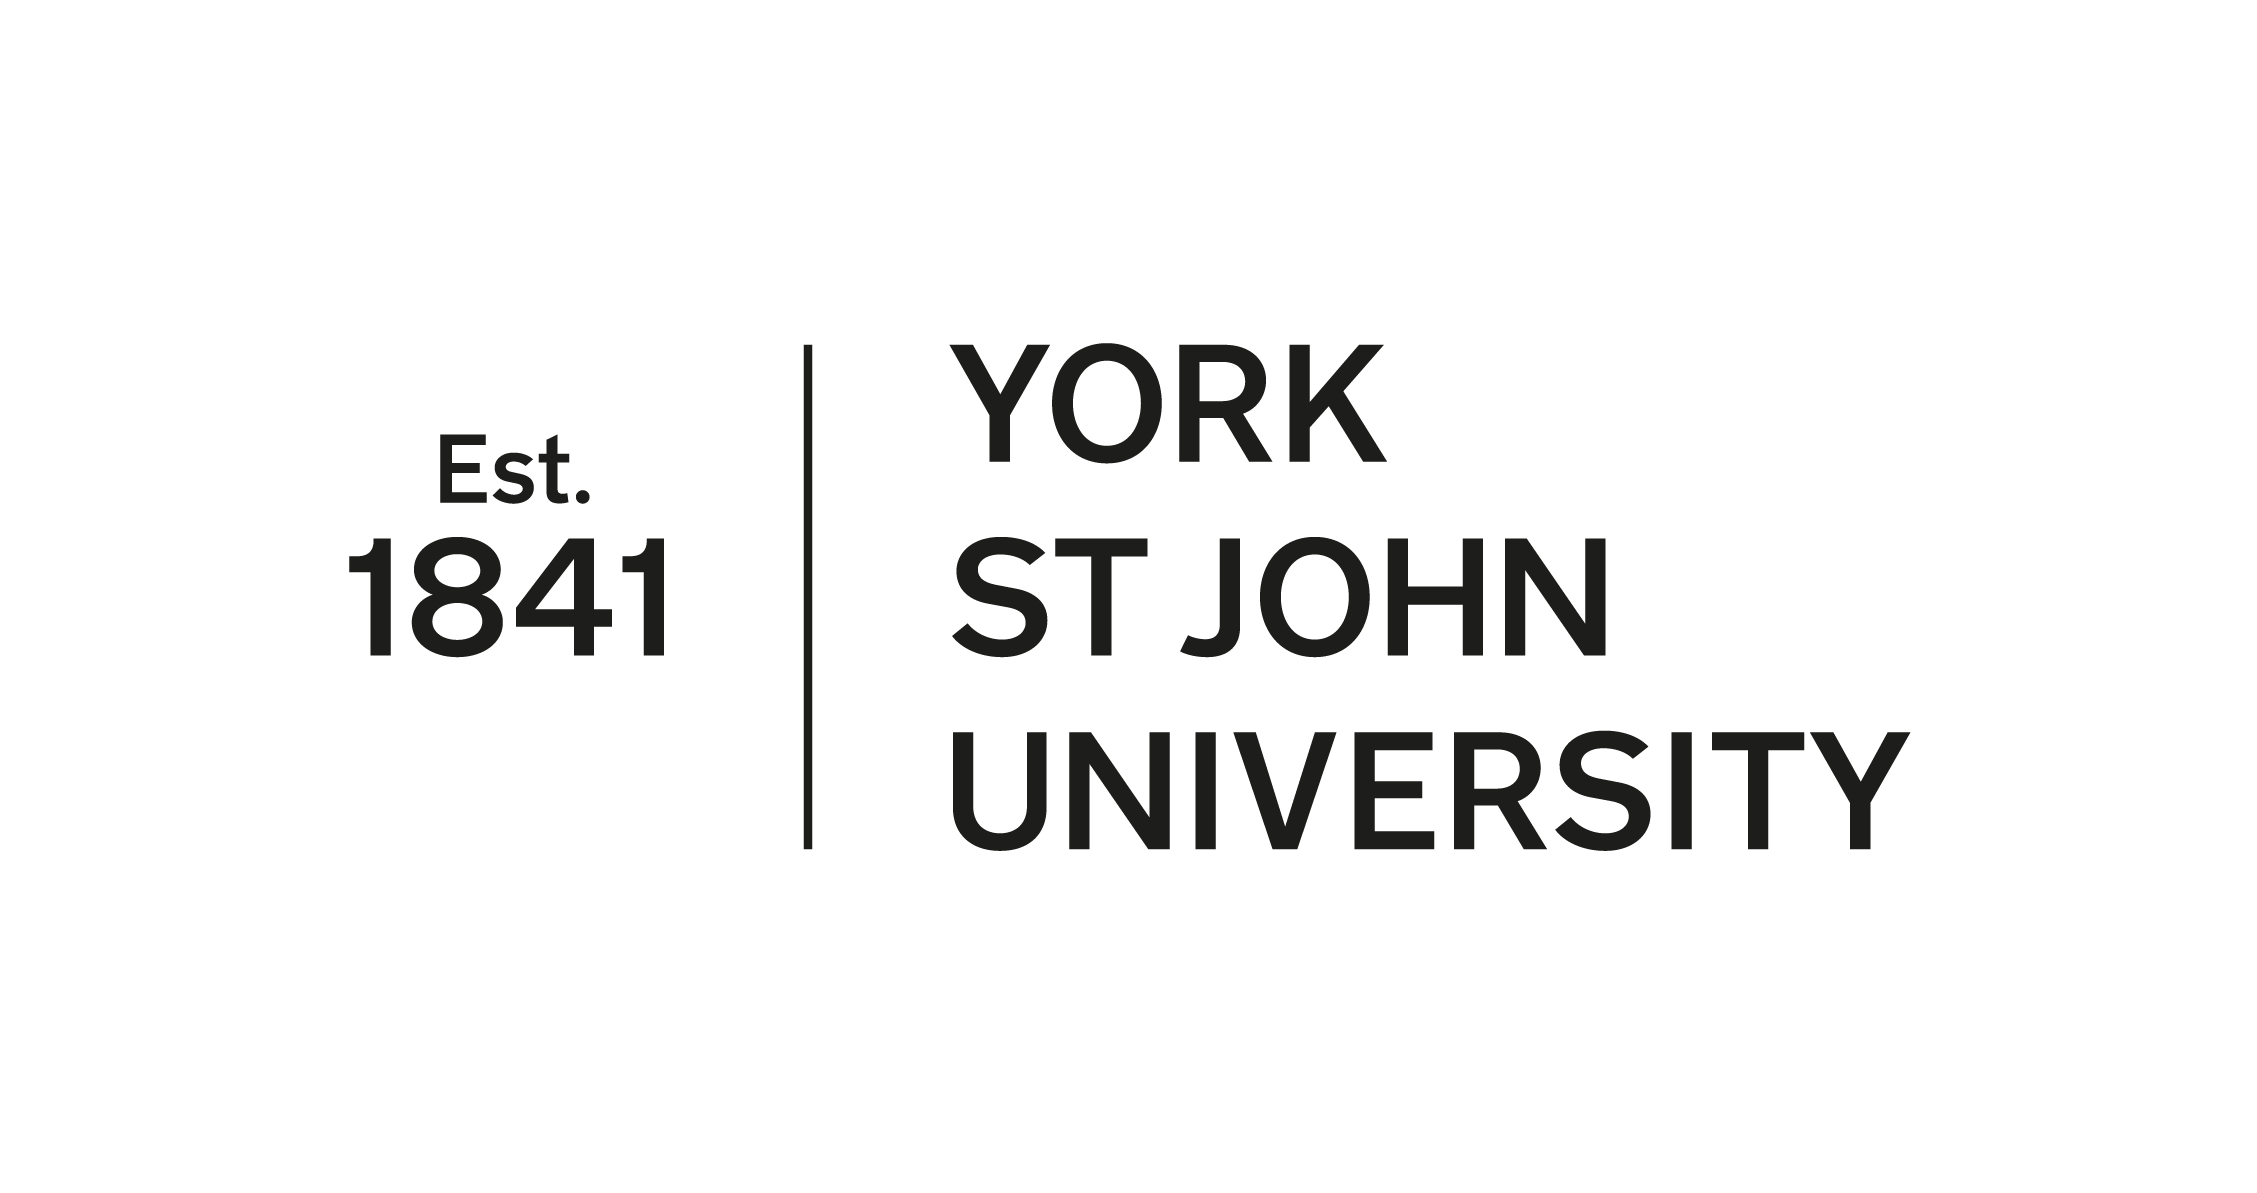 York St John University Moodle